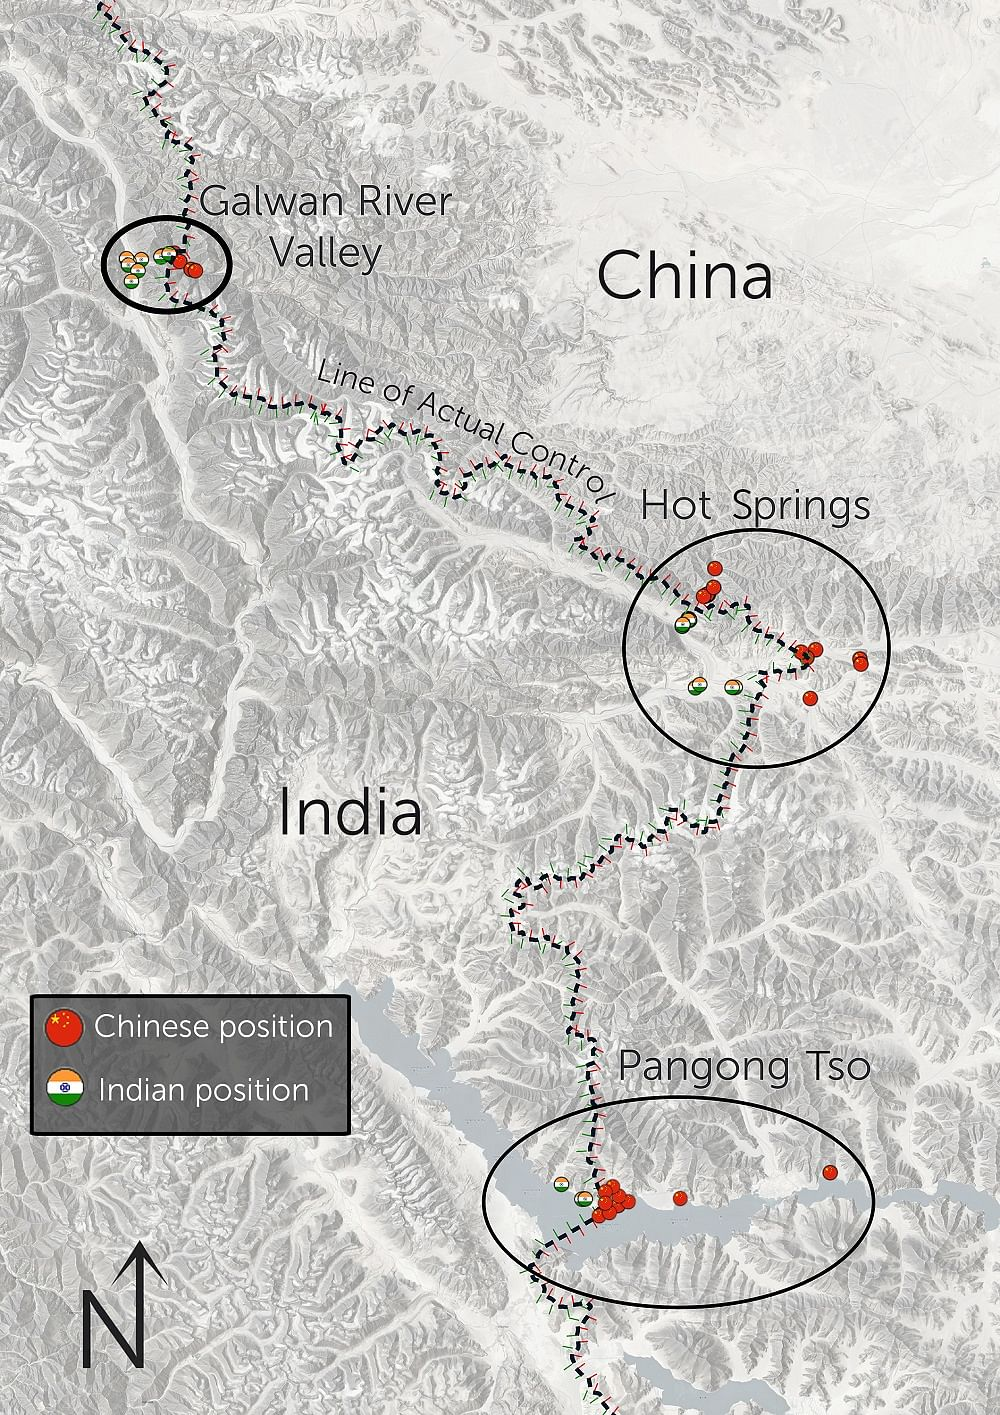 Ladakh sector, showing Line of Actual Control and key areas